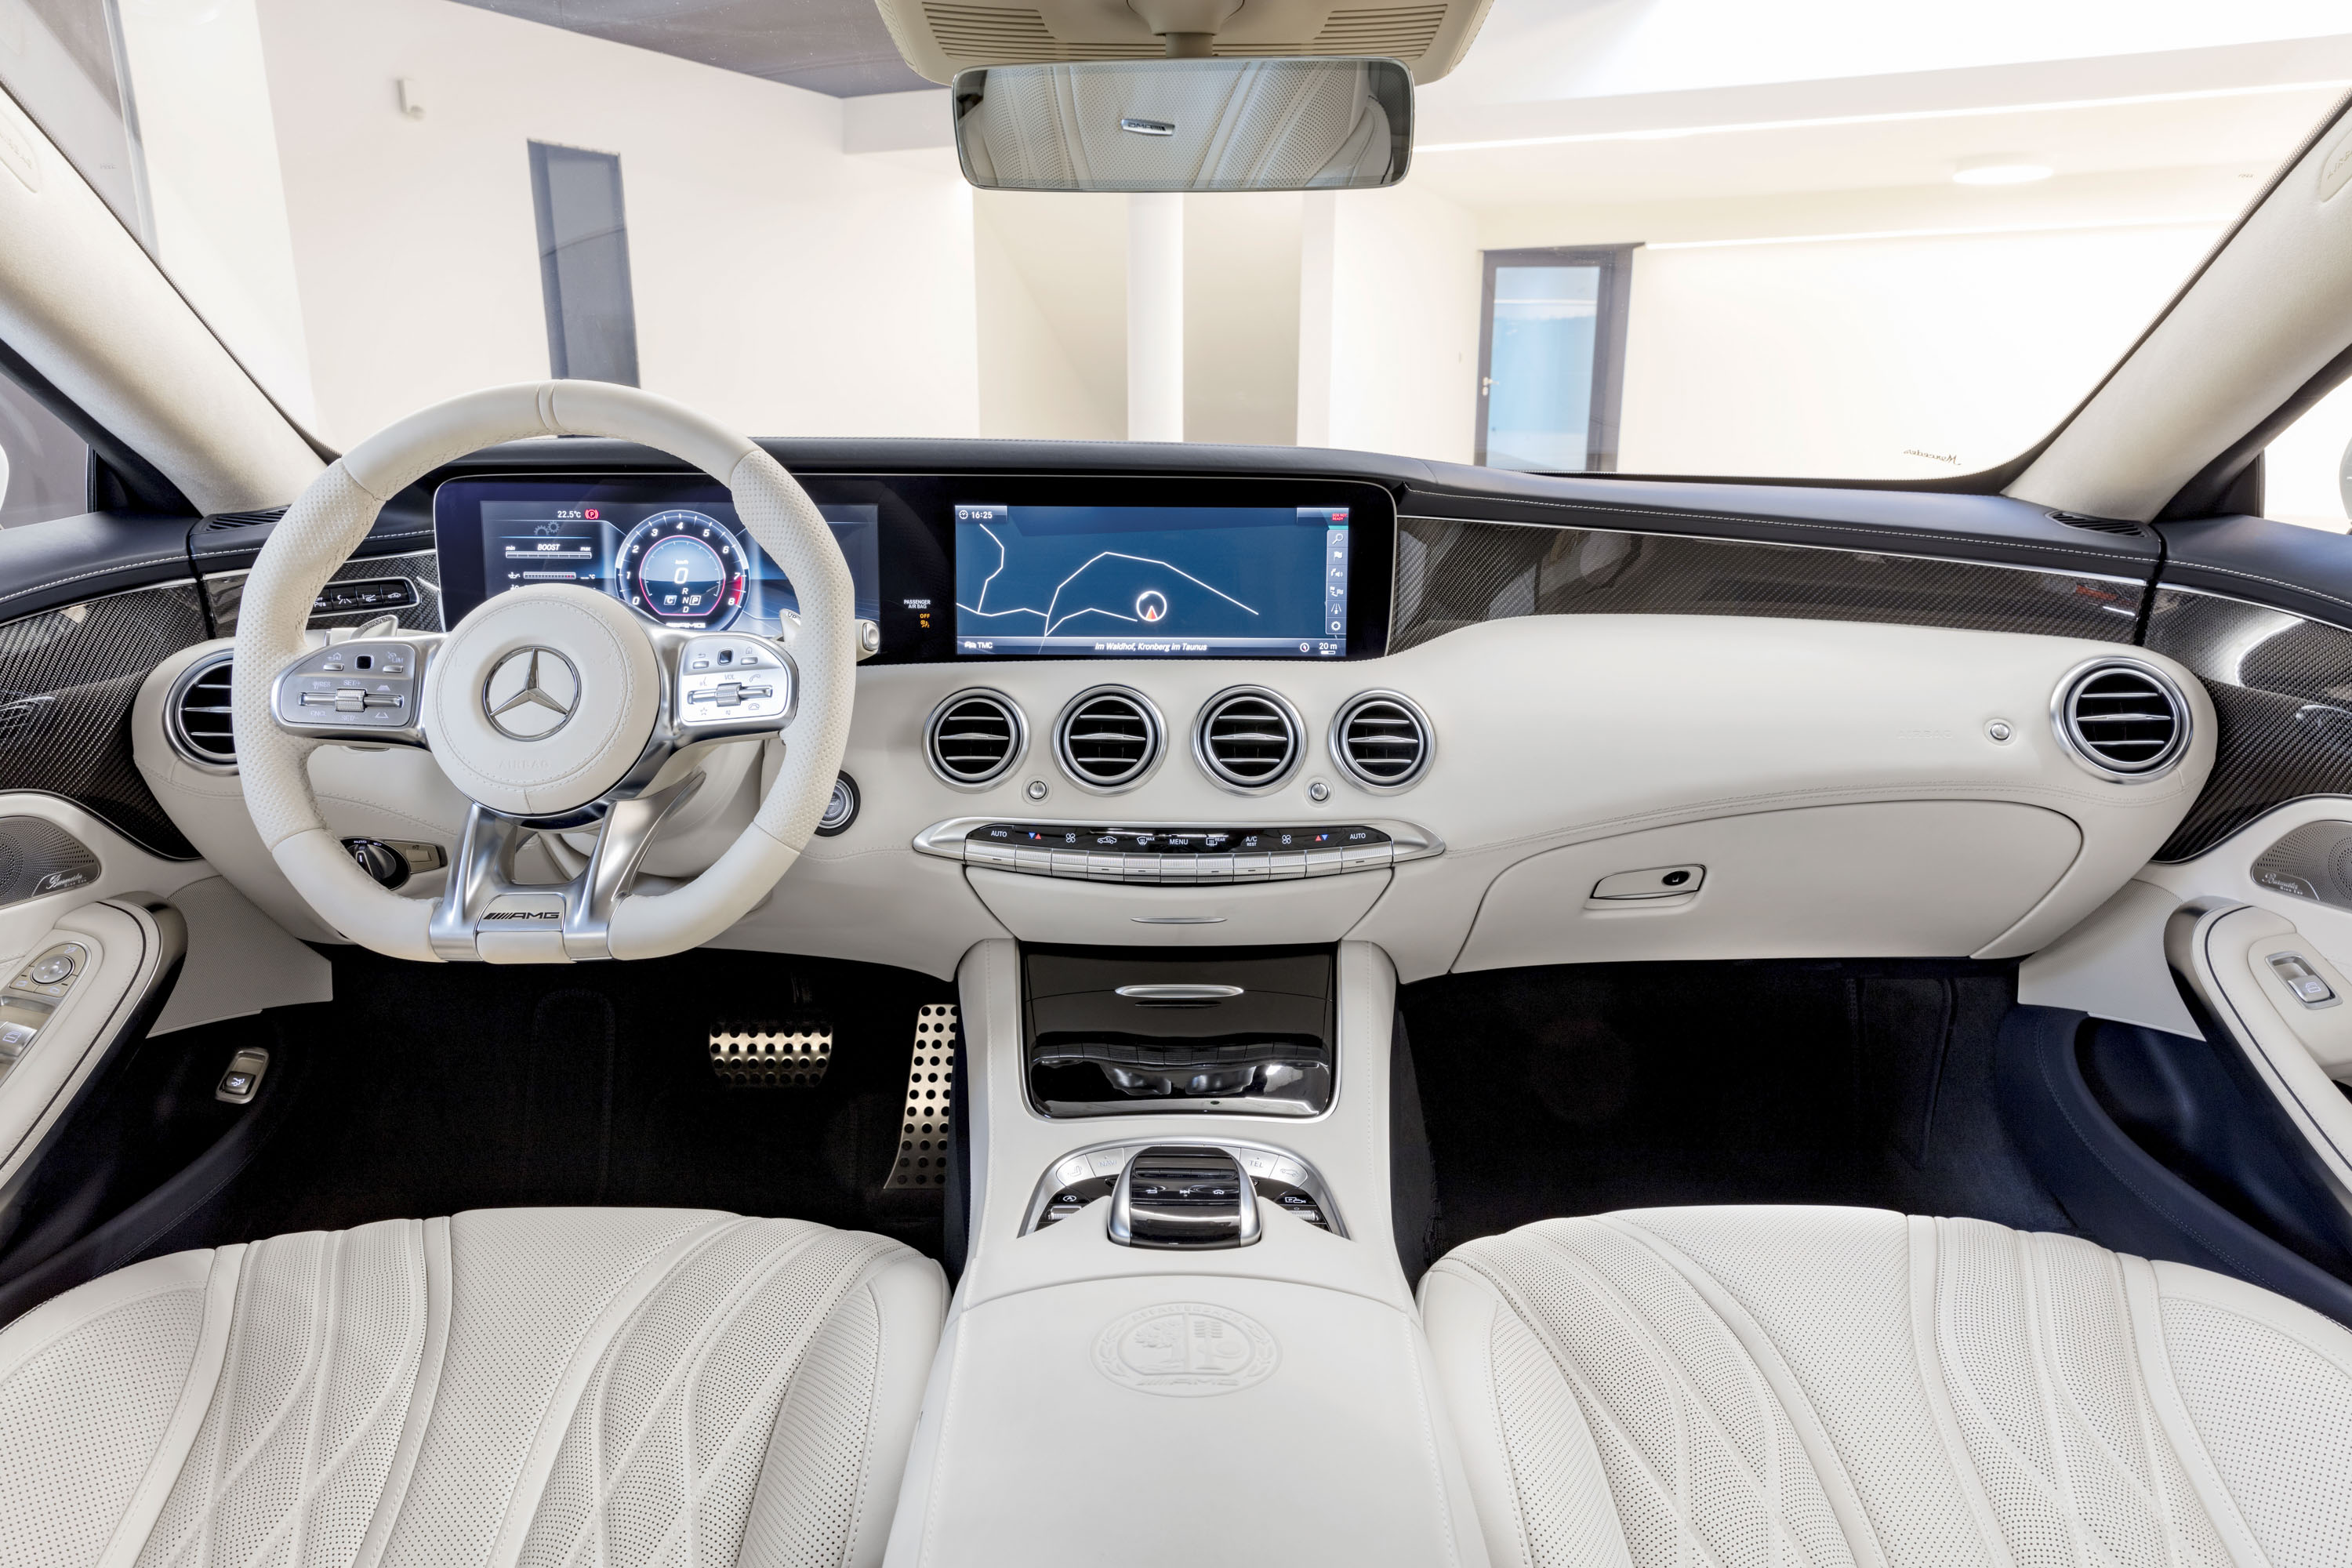 https://pictures.topspeed.com/IMG/jpg/201709/mercedes-amg-s63-cou-3.jpg